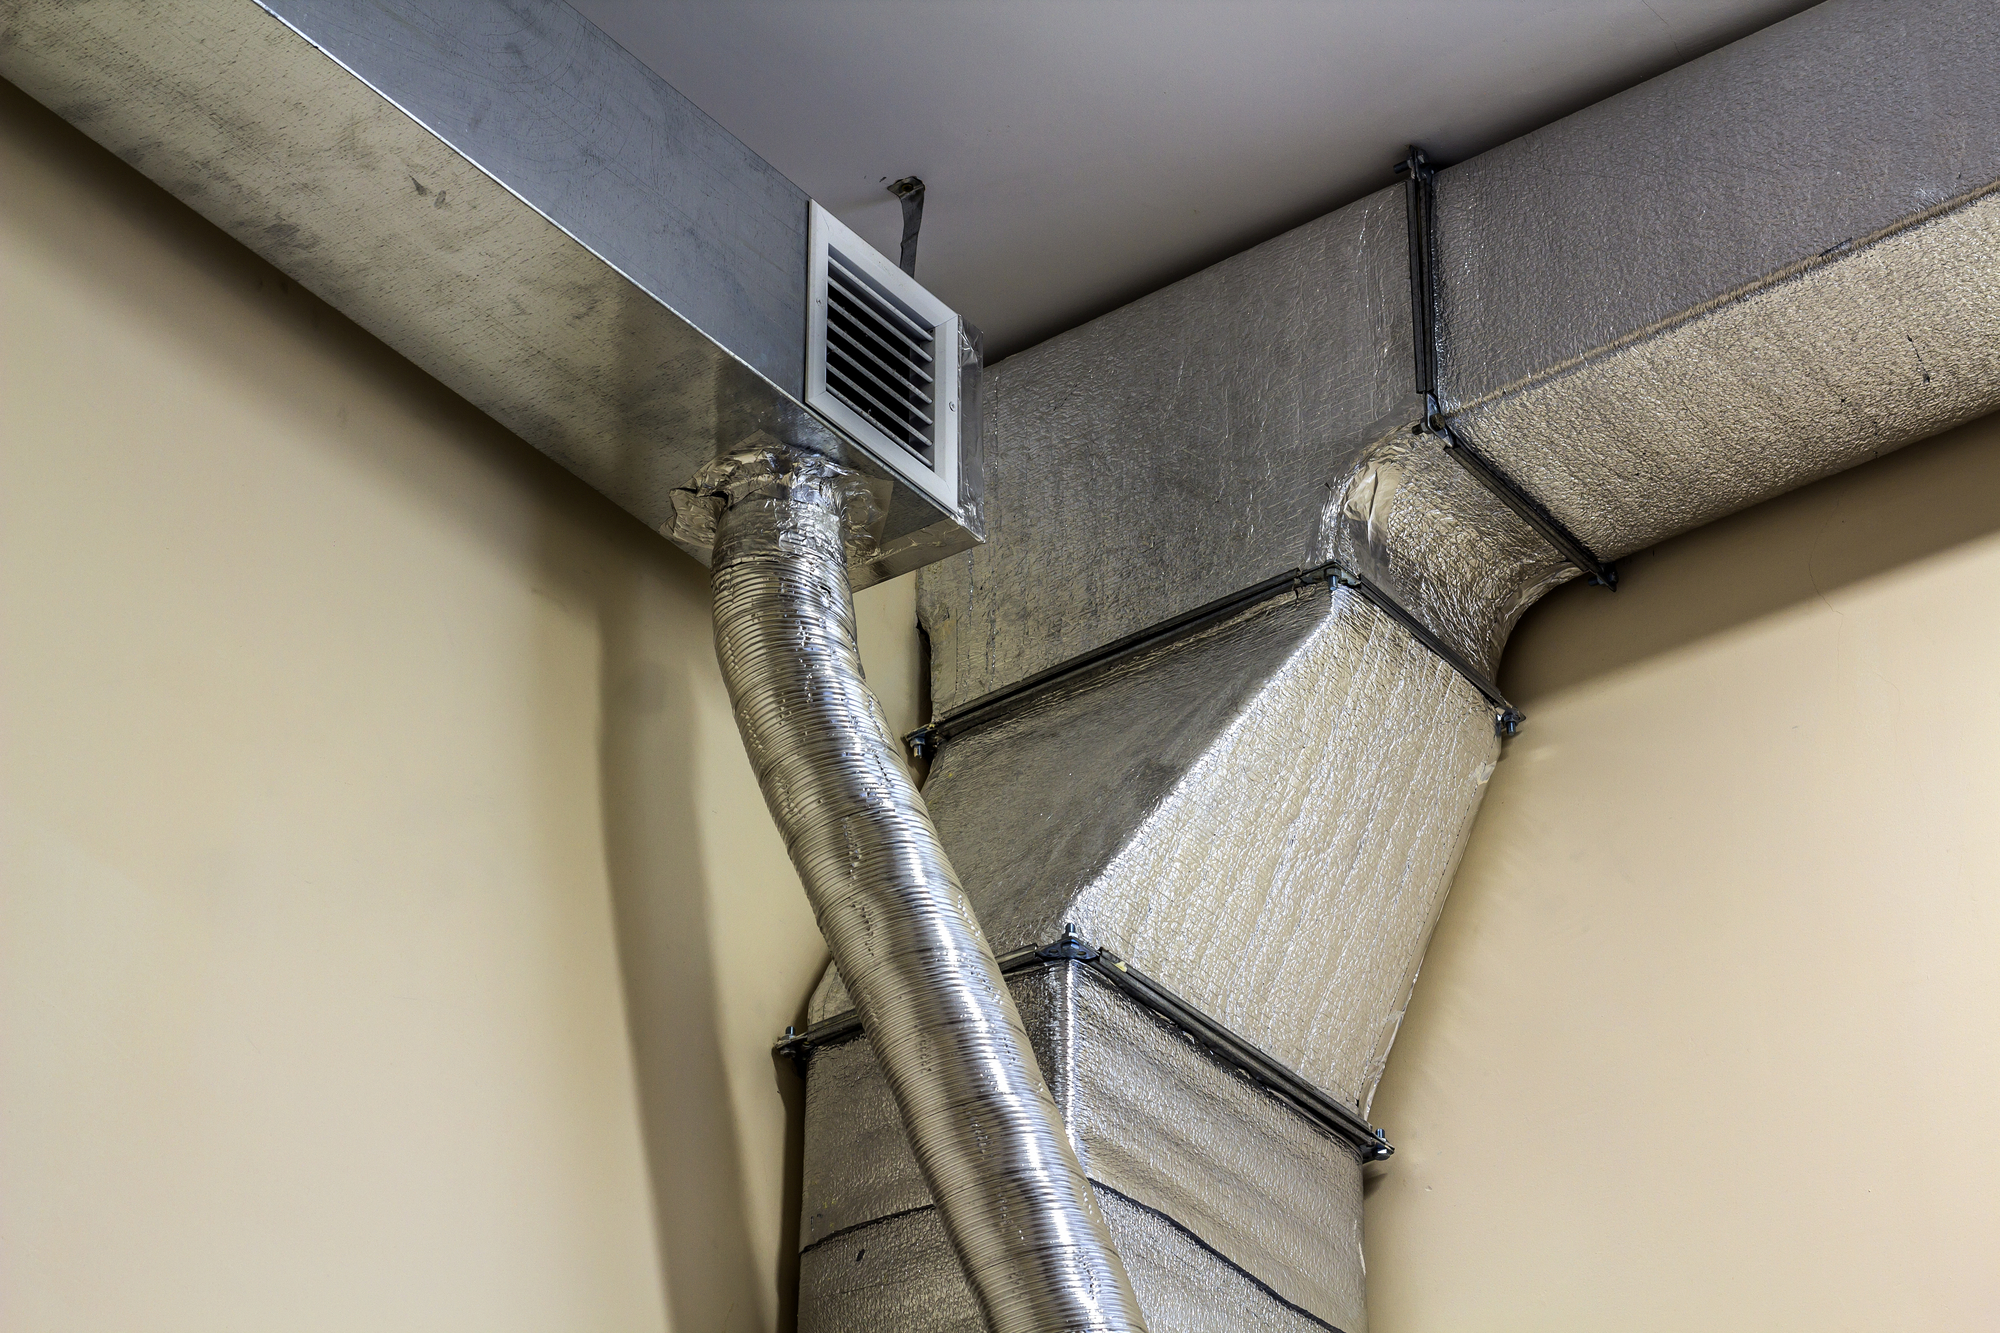 Novasteam is a Finley air duct cleaning services company